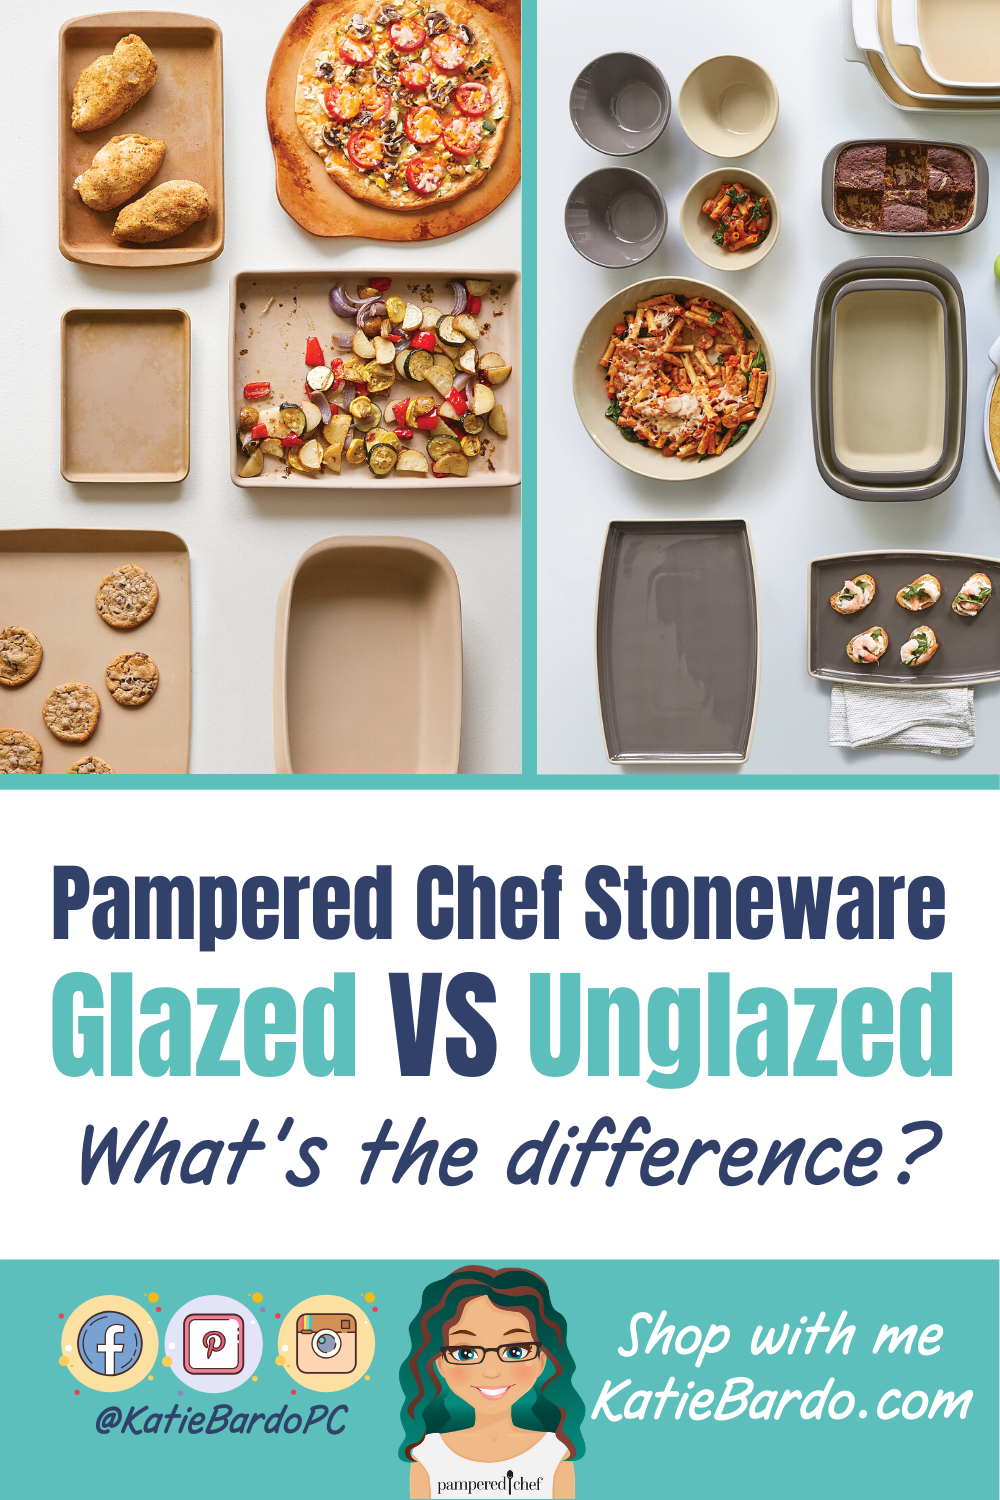 What S The Difference Between Glazed And Unglazed Stoneware Direct Sales Party Plan And Network Marketing Companies Member Article By Katie Bardo